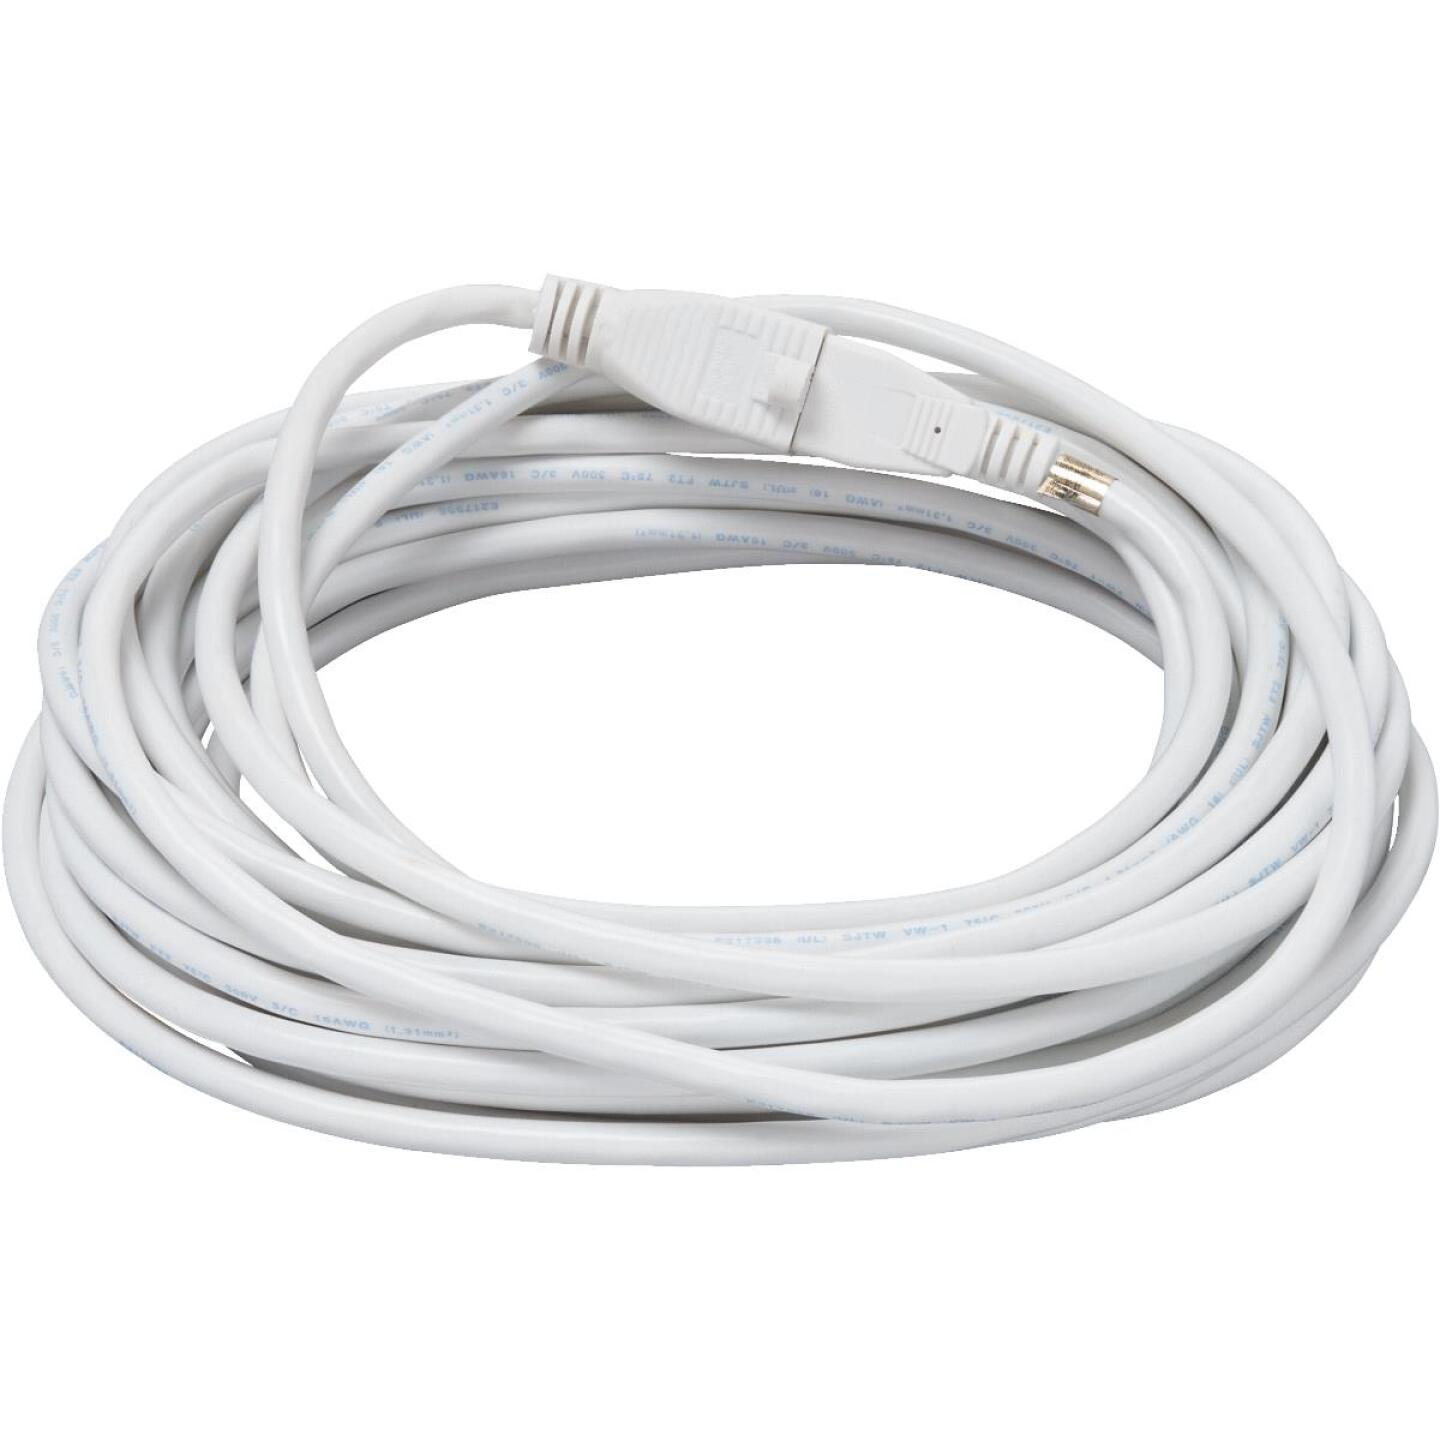 Do it Best 40 Ft. 16/3 Medium-Duty White Patio Extension Cord Image 2